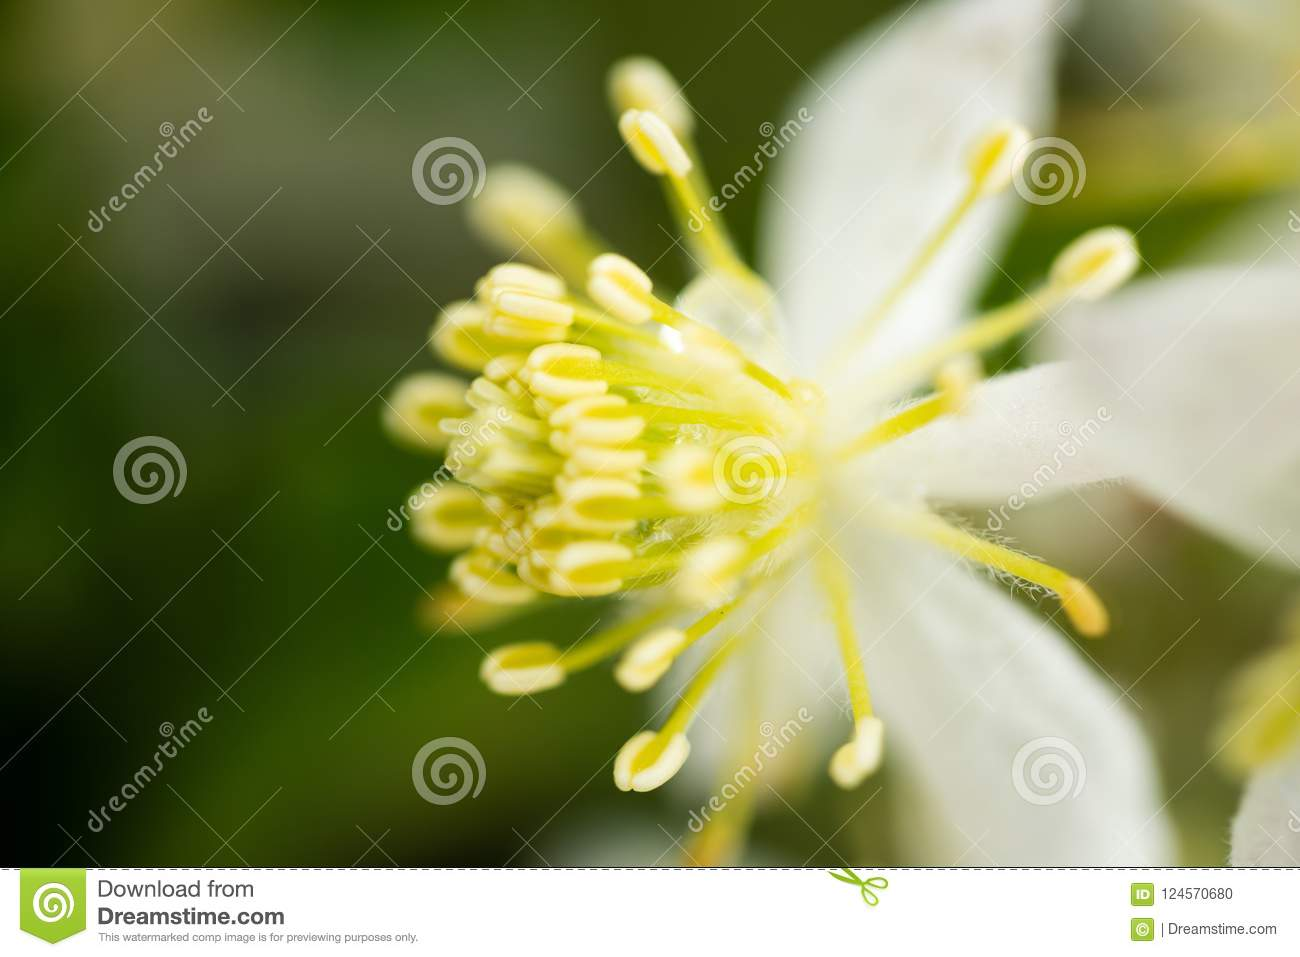 Macro Photograph Of A Small White Flower With Soft Yellow Pollen